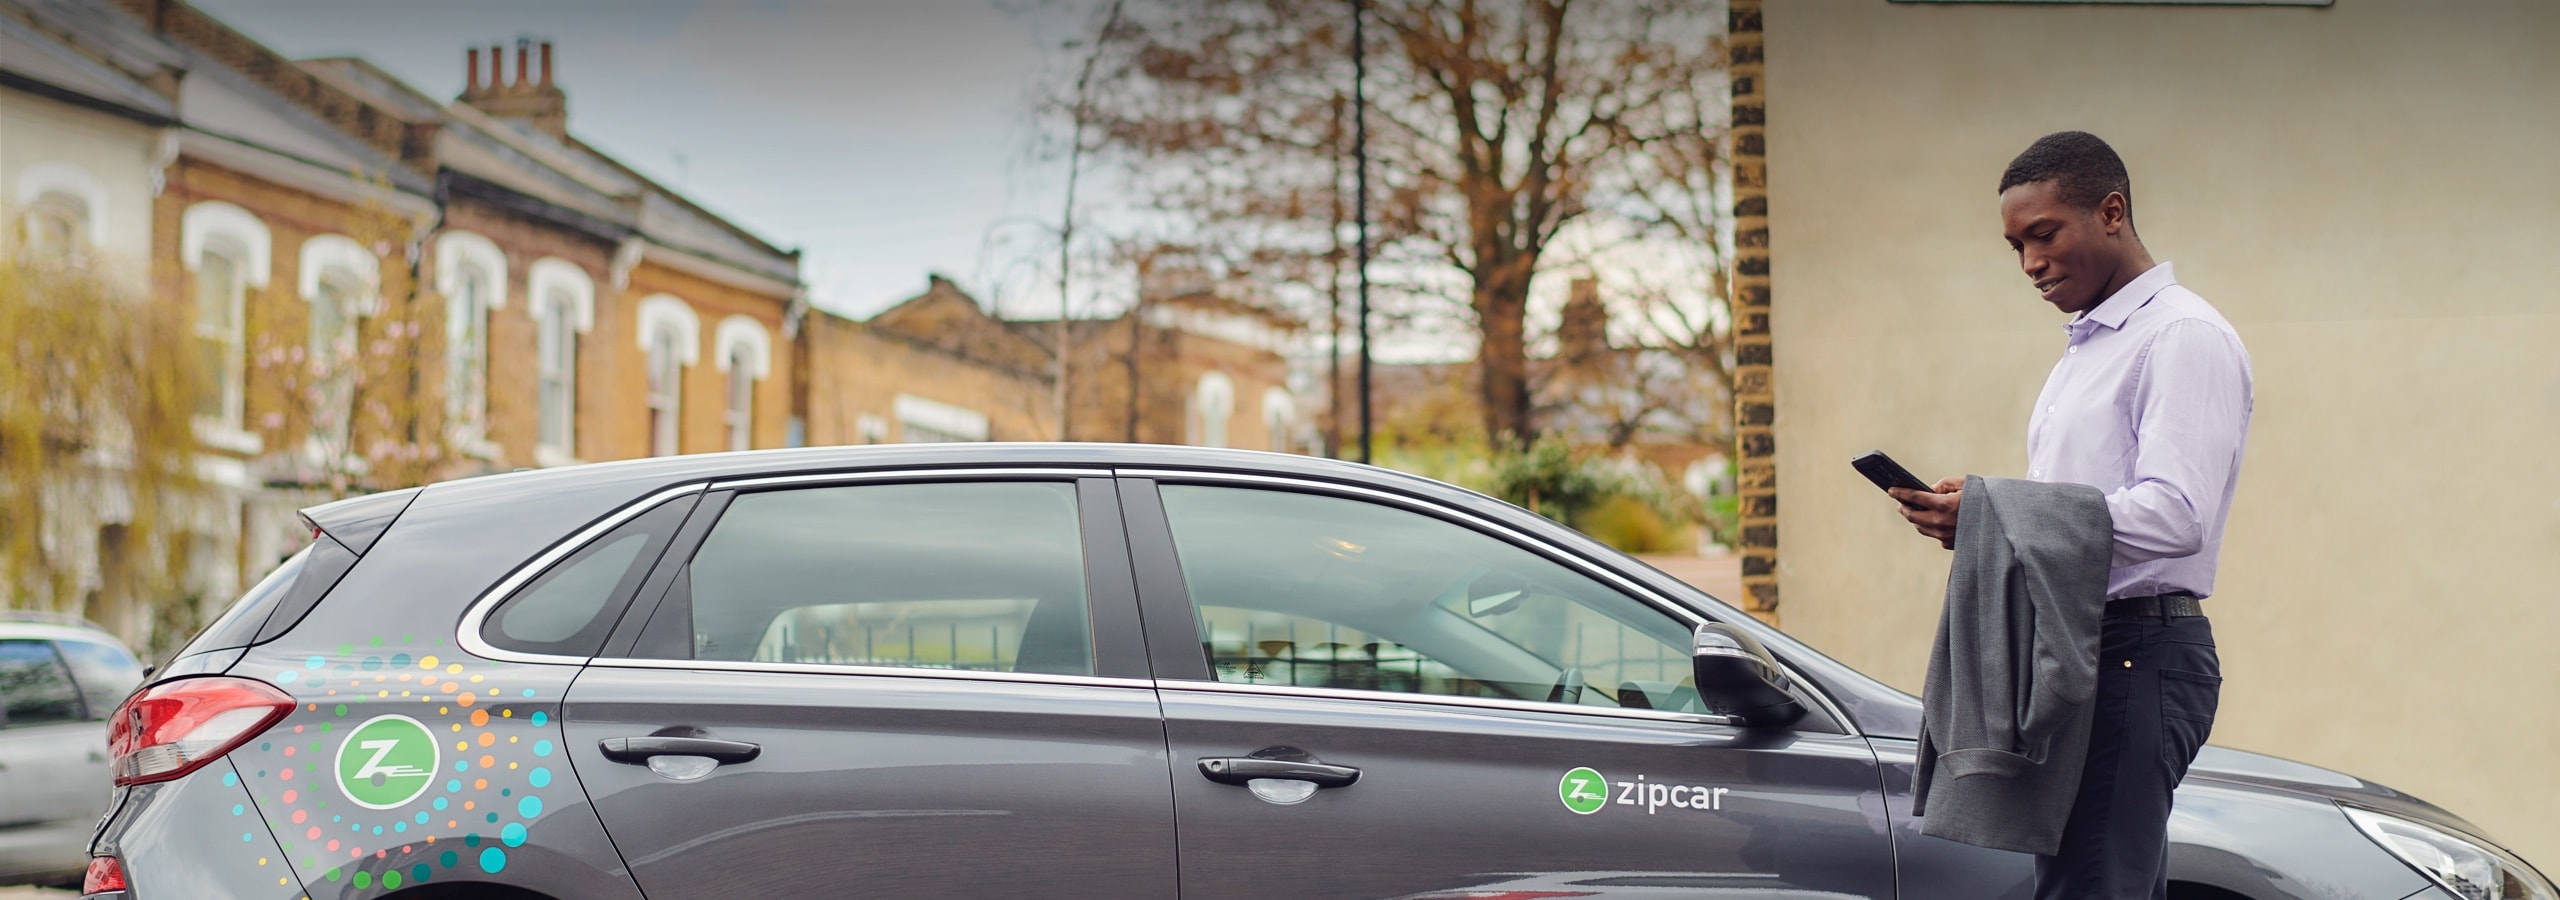 man in a suit holding a cell phone on the size of a zipcar